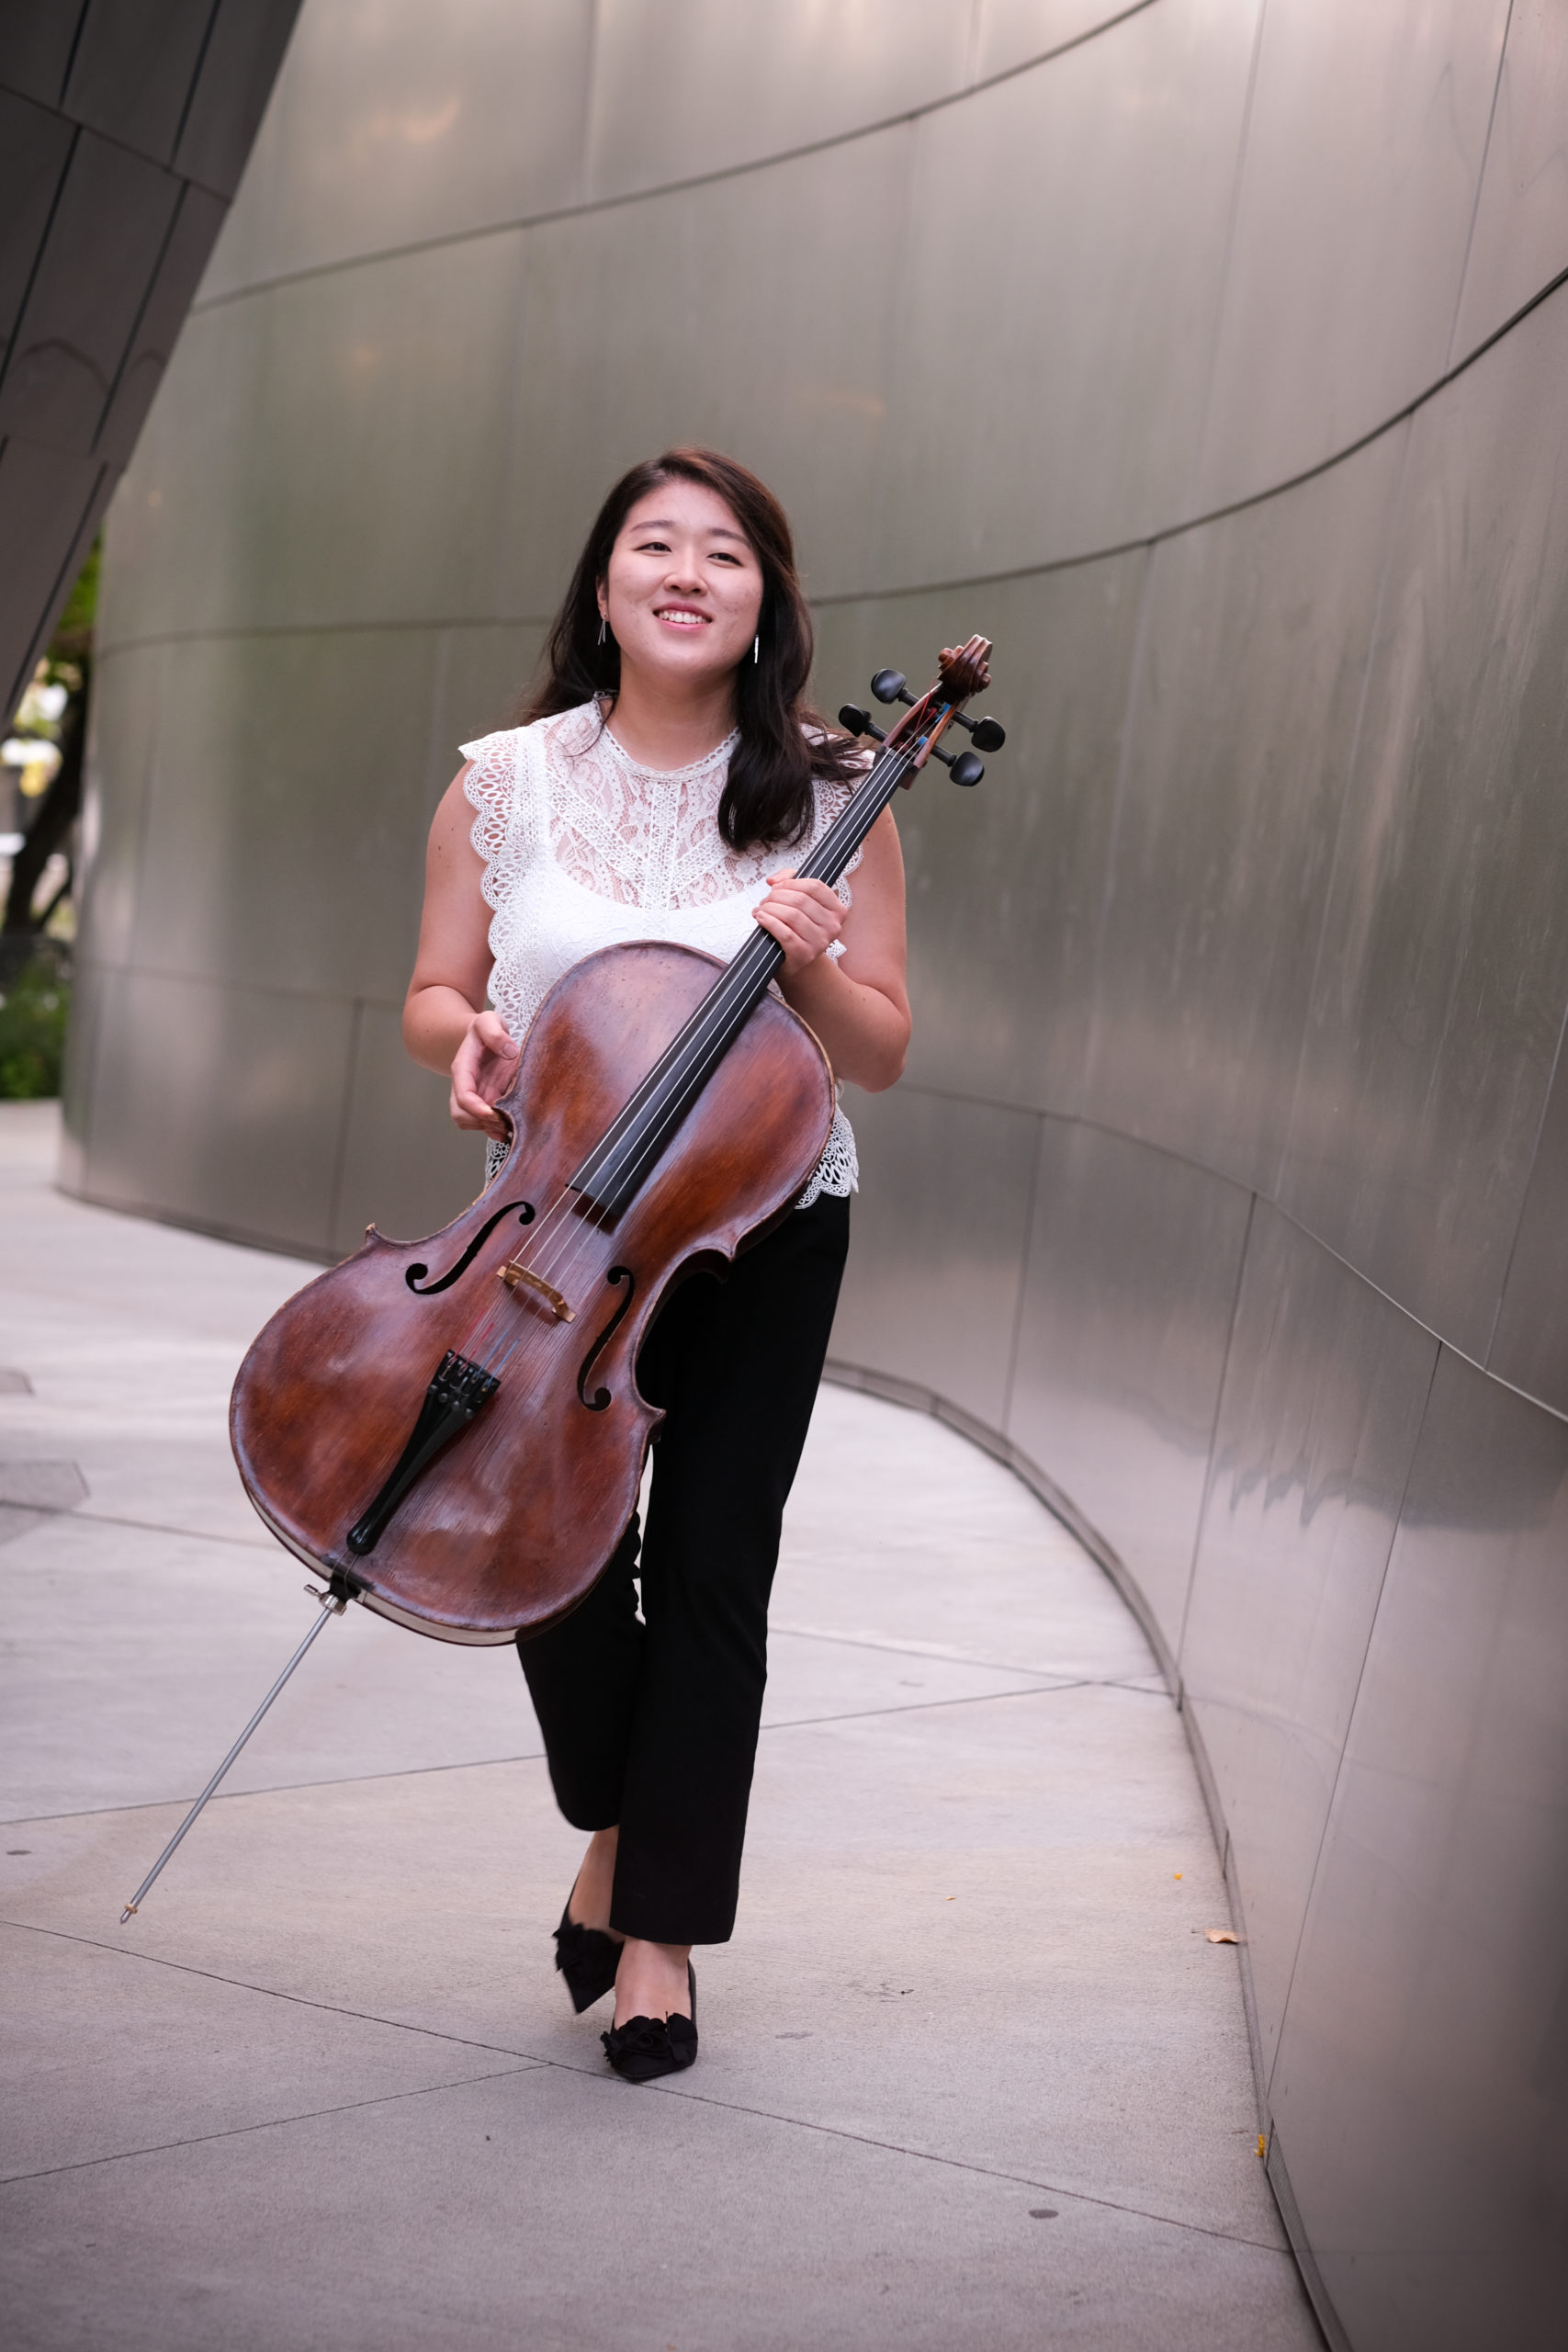 Outdoor photo of Ye Lin (Stella) Cho holding cello